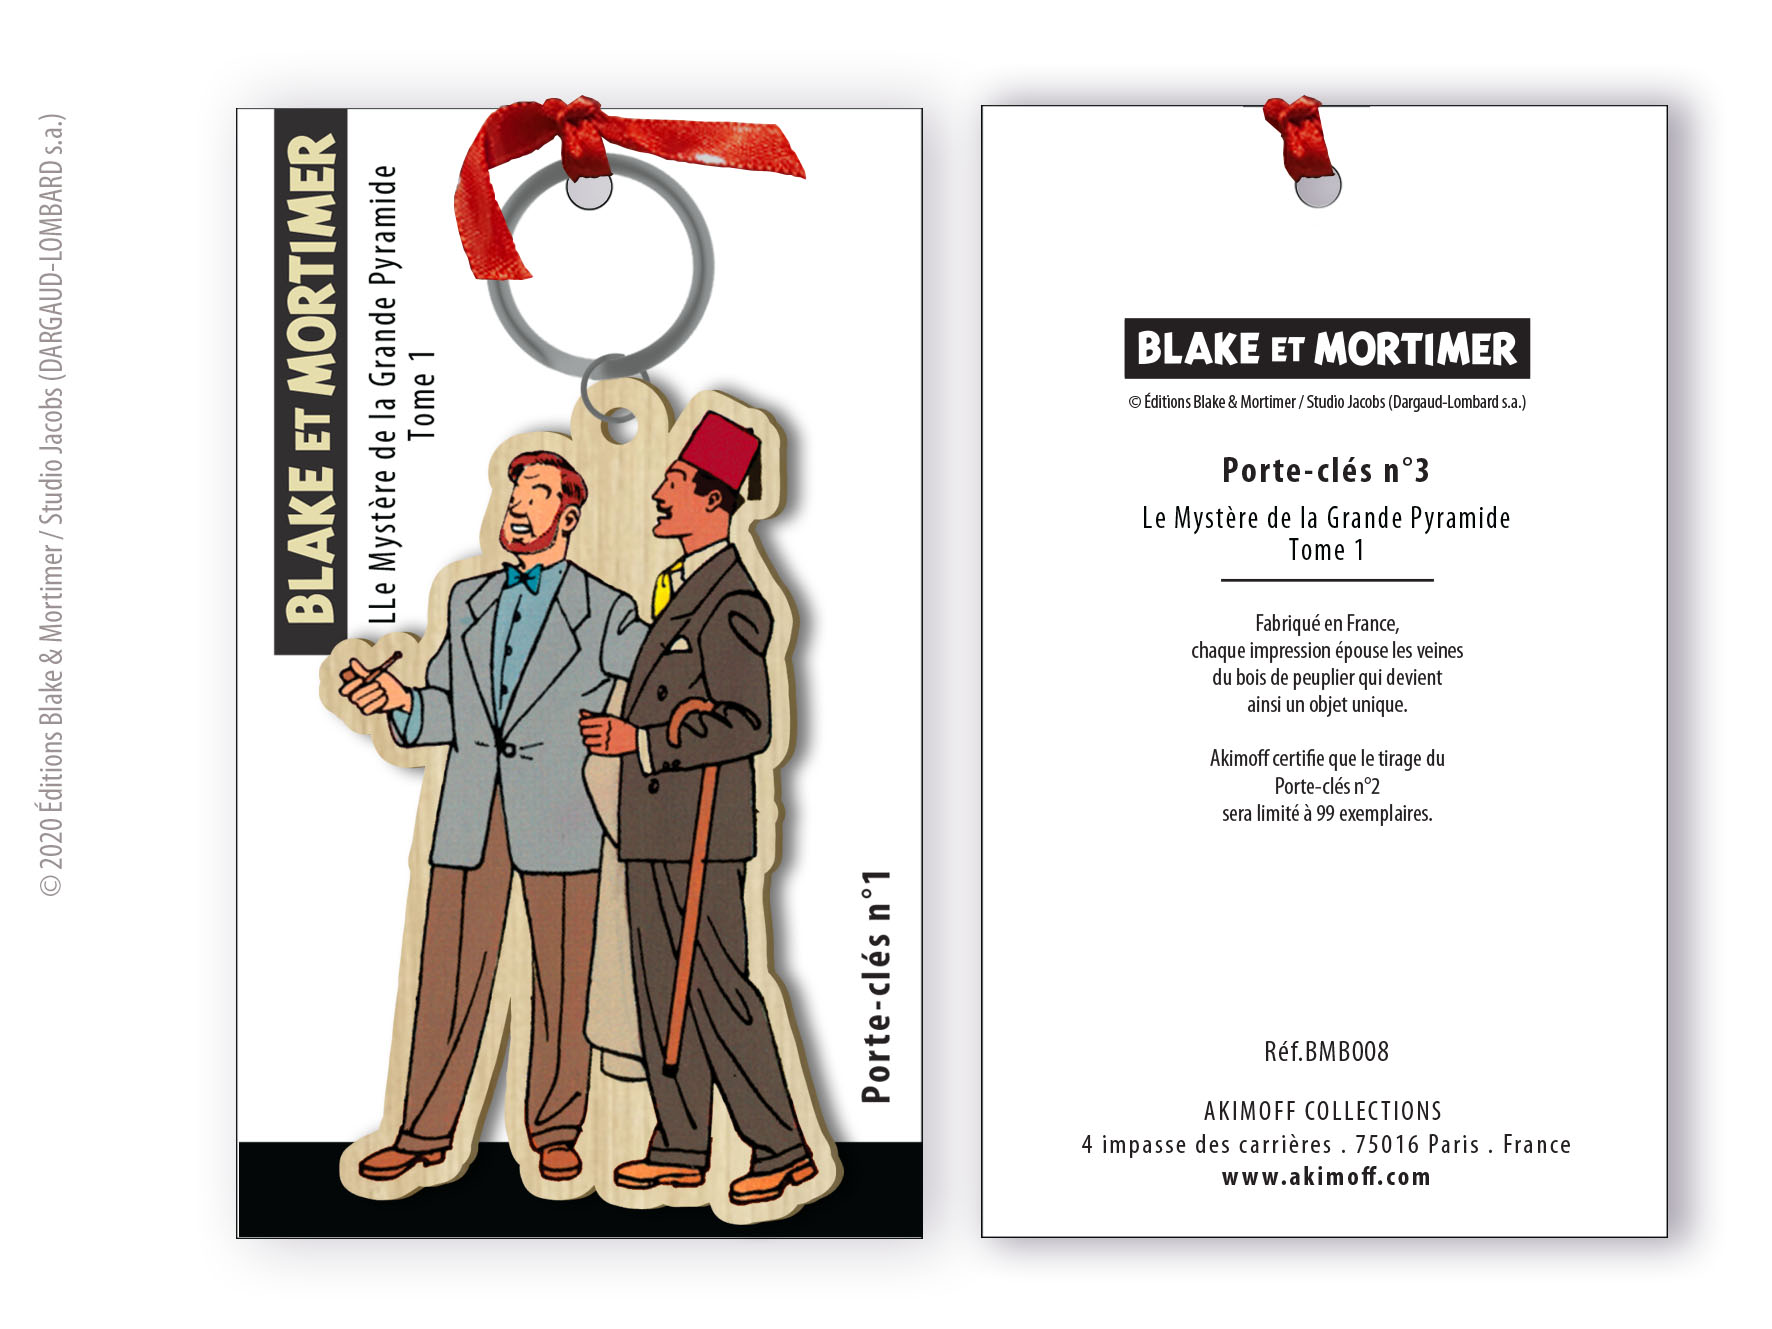 PORTE-CLES DE COLLECTION N°3 - PHILIP MORTIMER ET AHMED RASSIM BEY